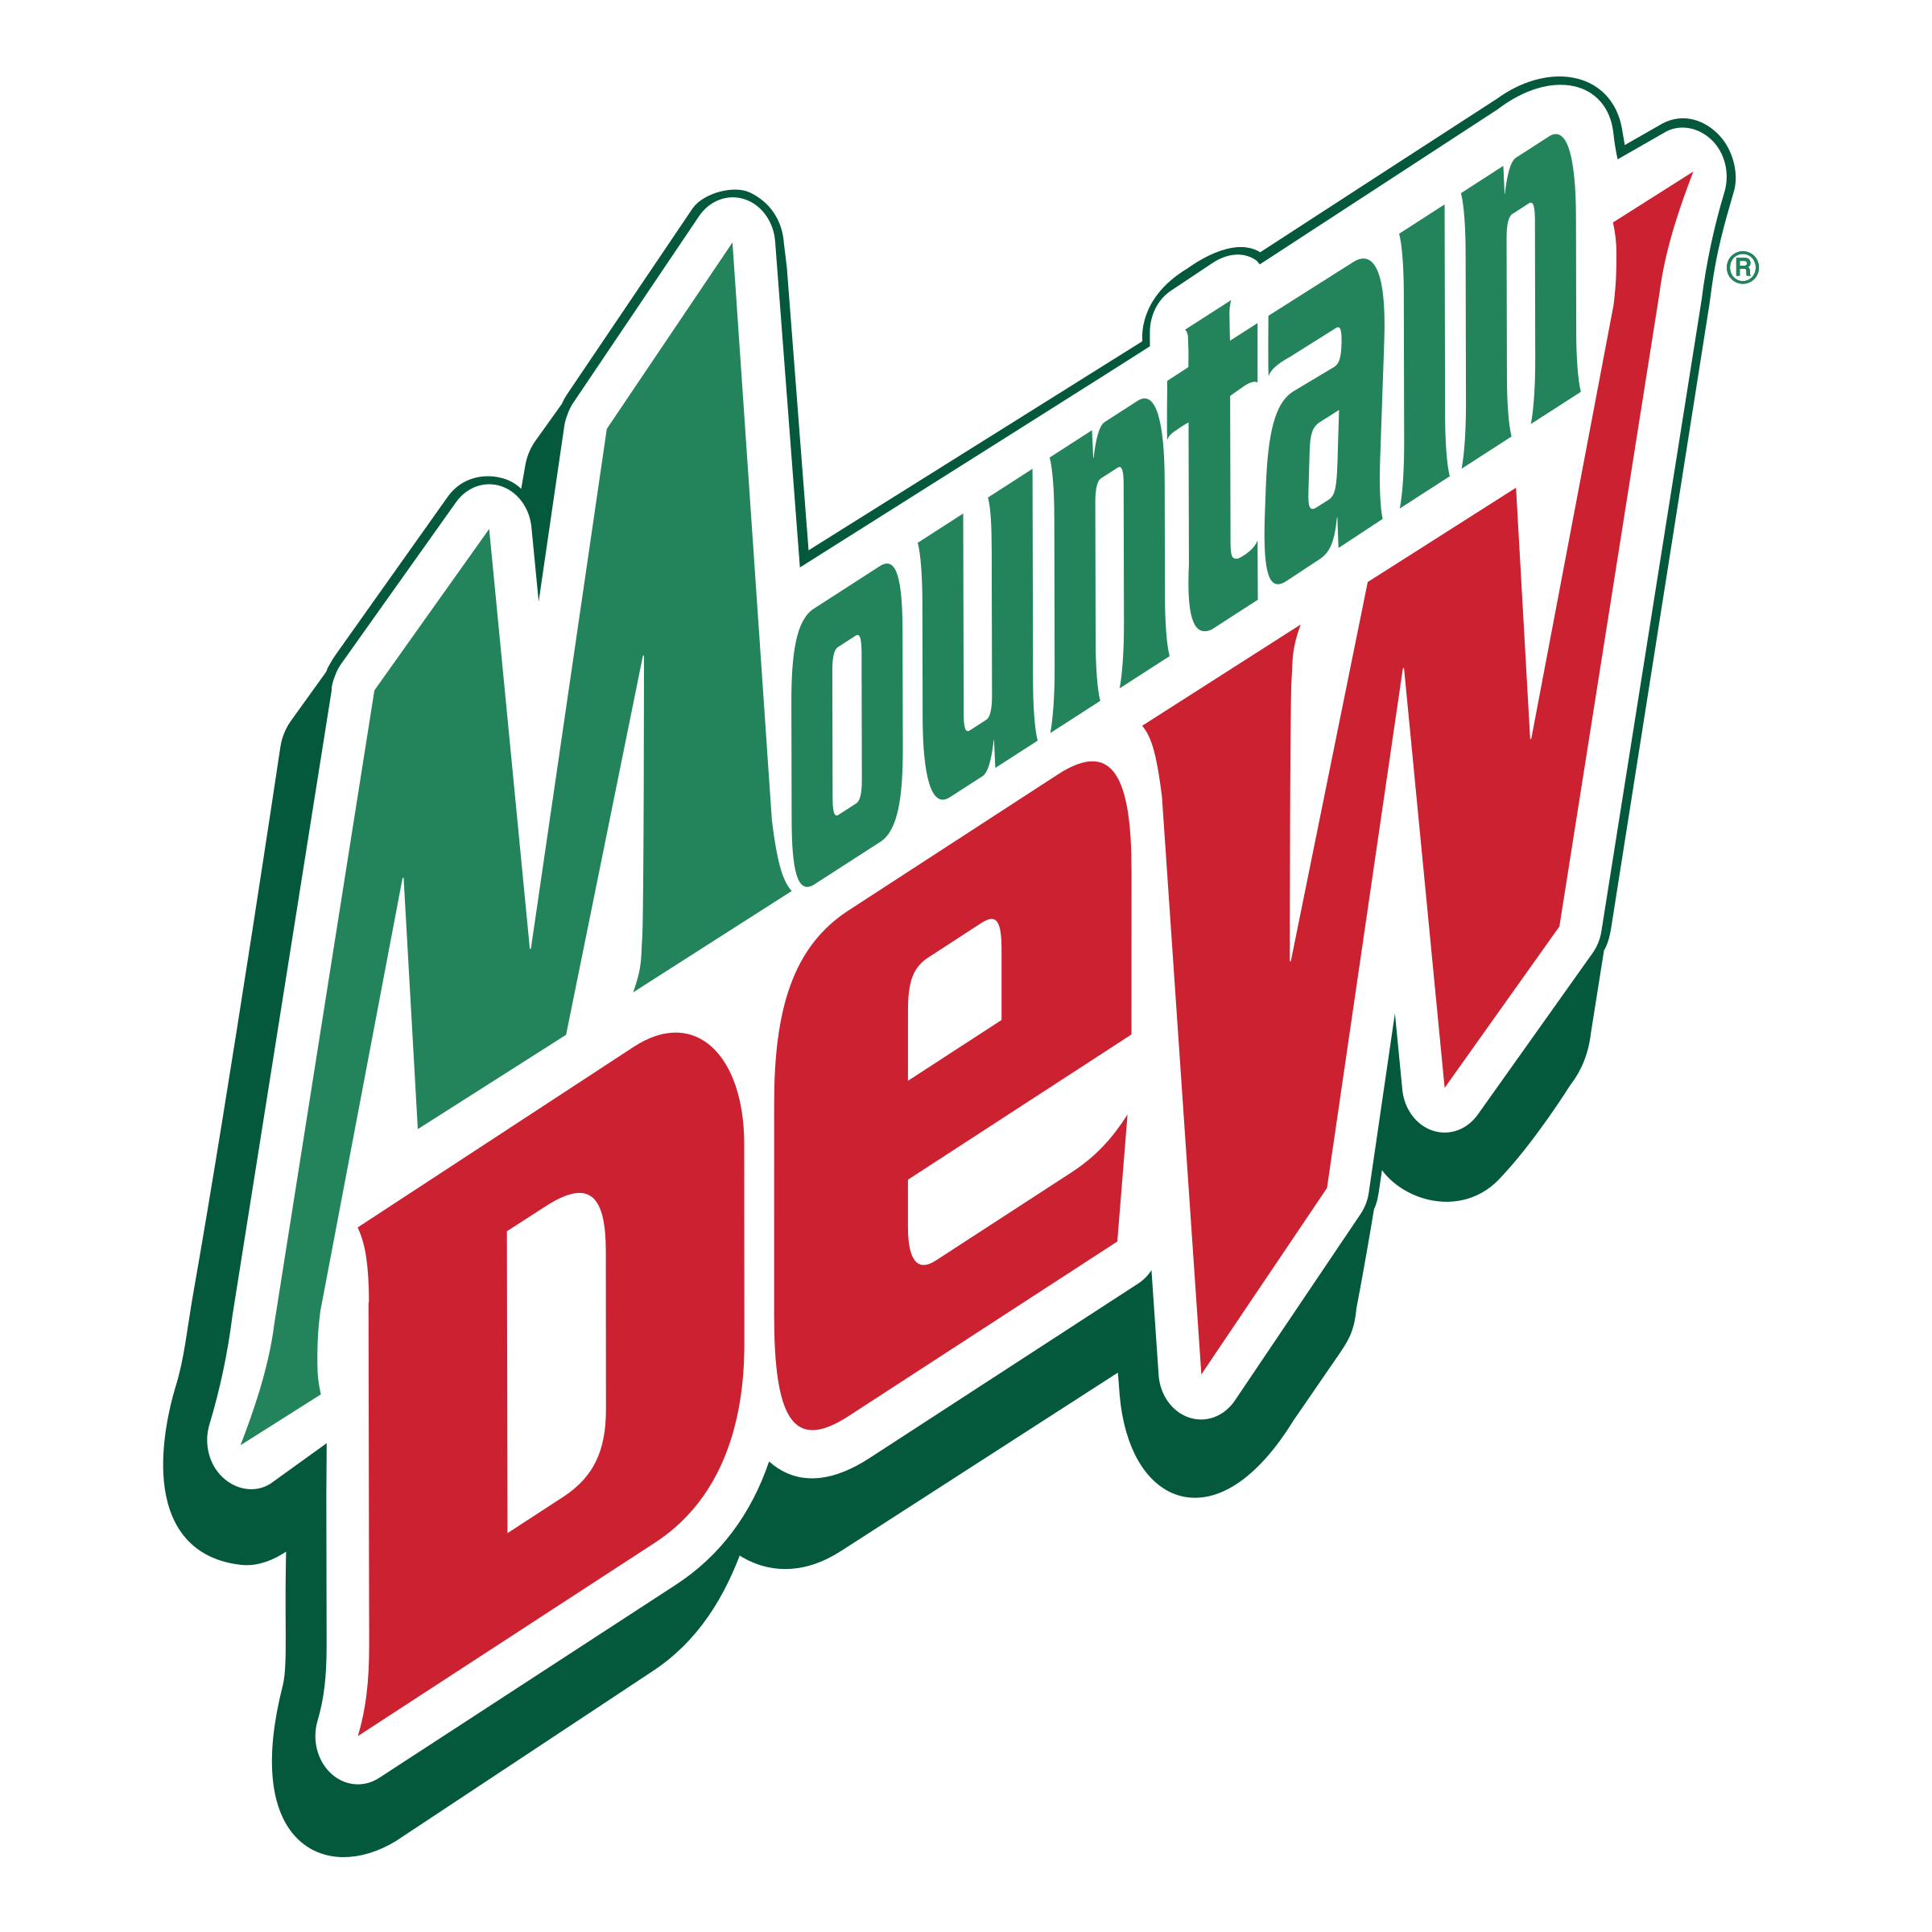 Mountain Dew Logo - Mountain Dew Logo PNG Transparent & SVG Vector - Freebie Supply